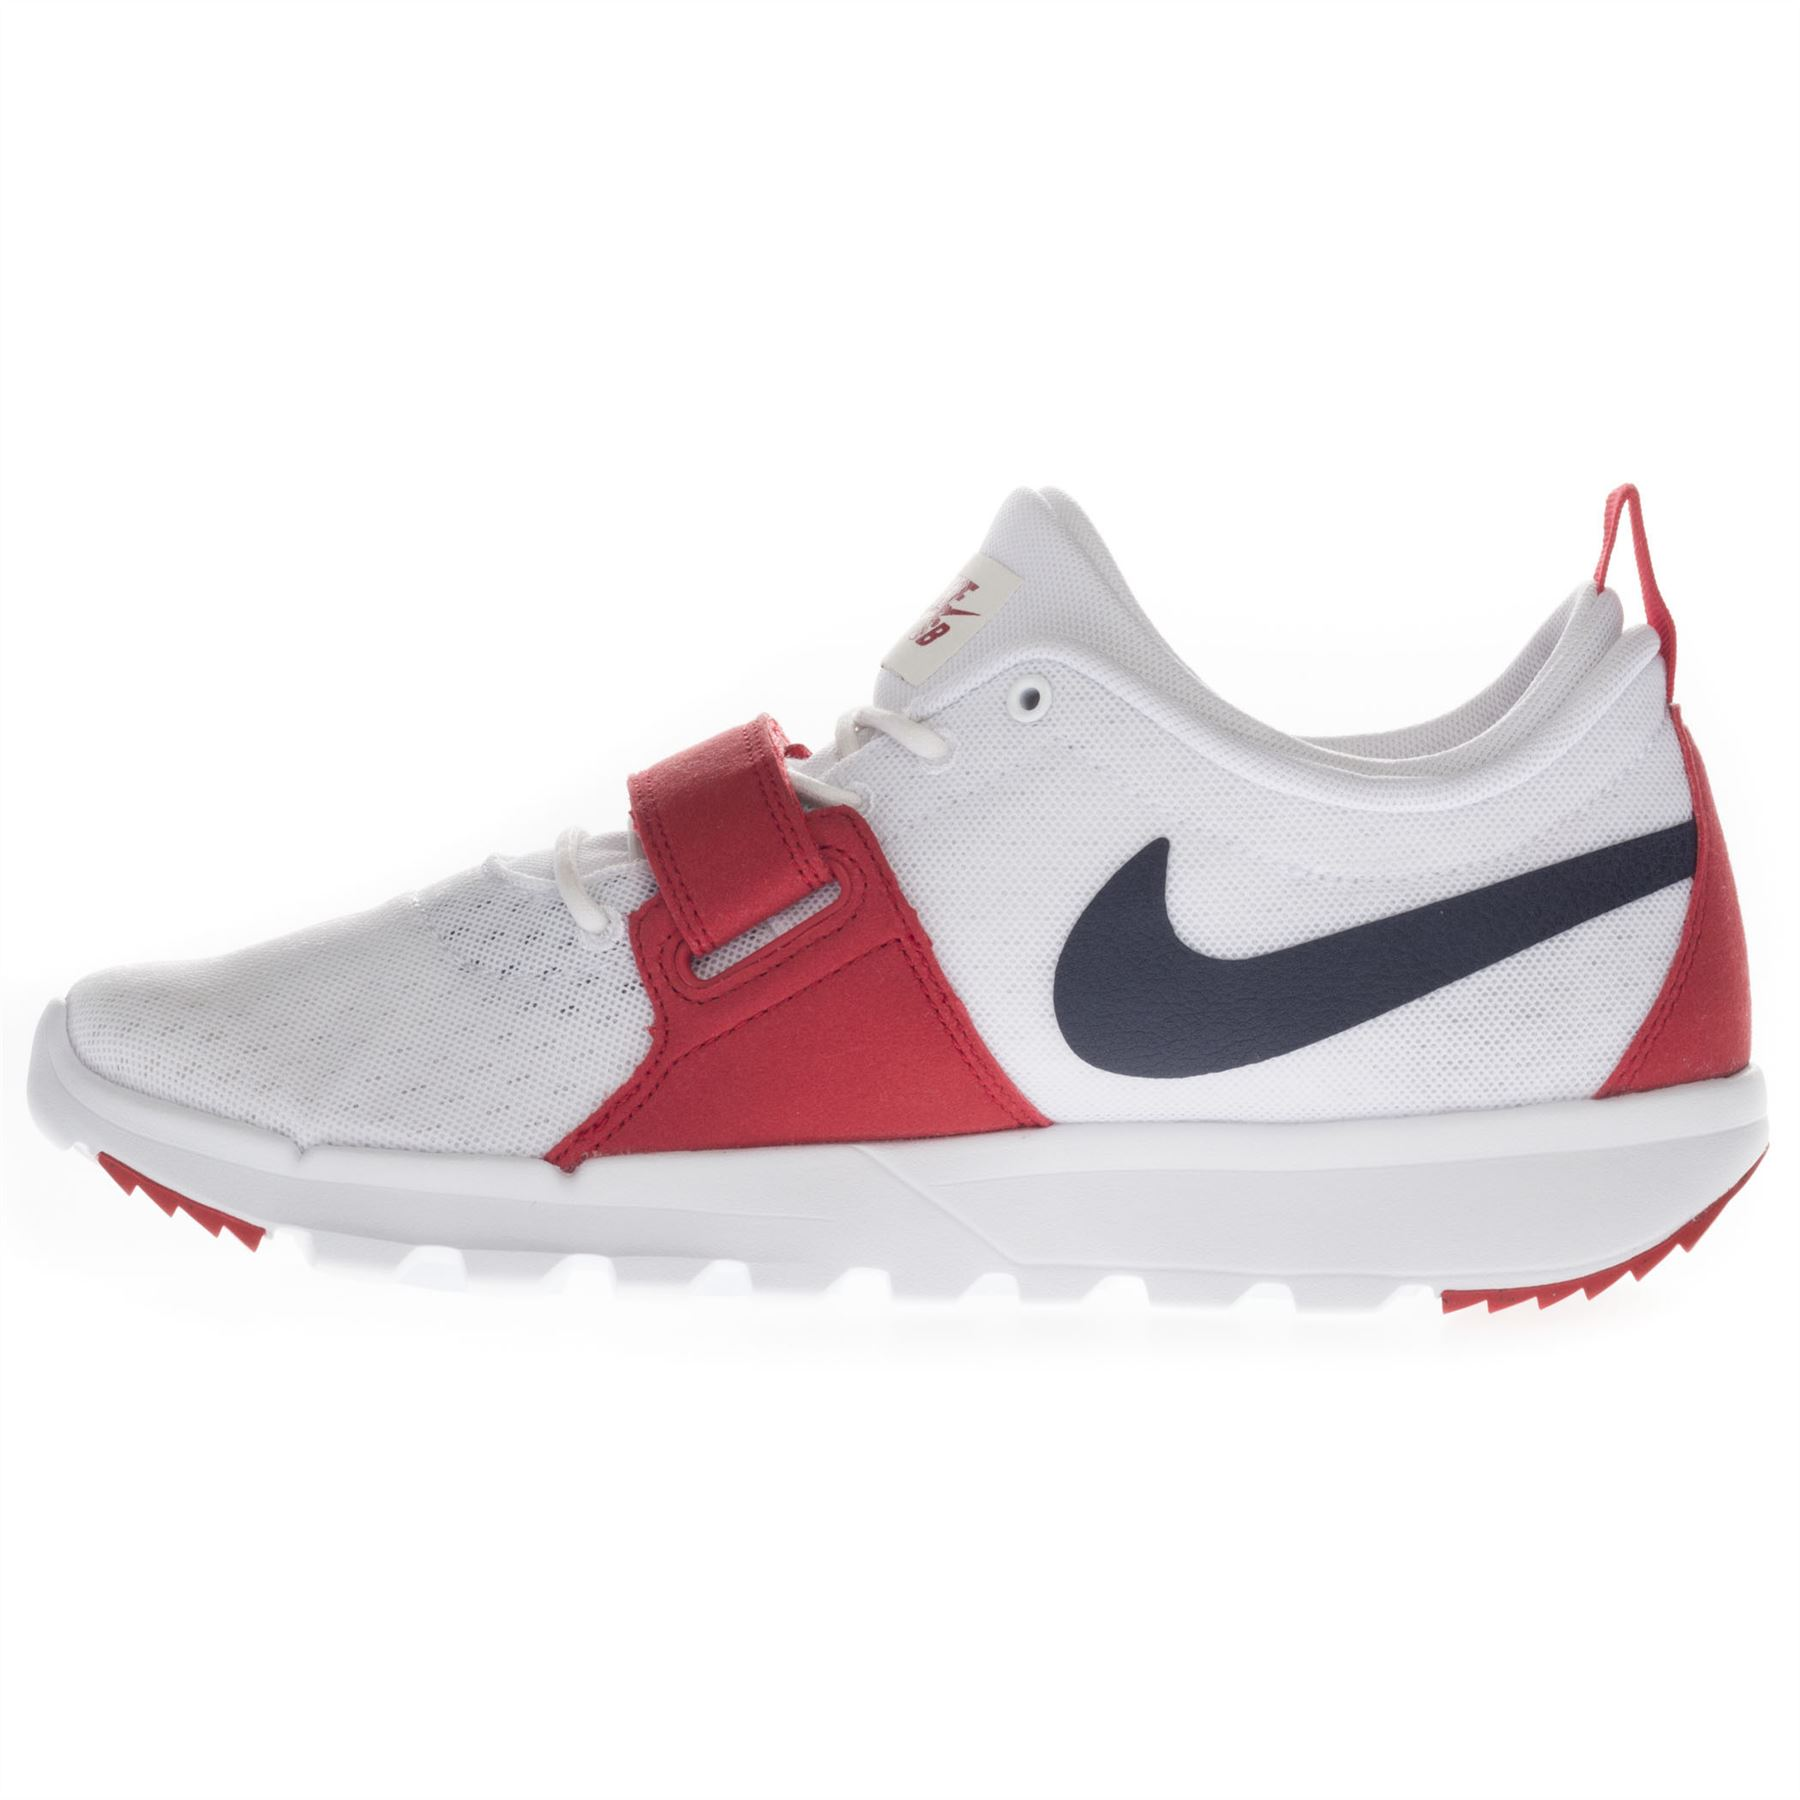 96ccb289d289 Nike Men s Trainerendor Low Top Running Sports Lace Up Strap Gym ...